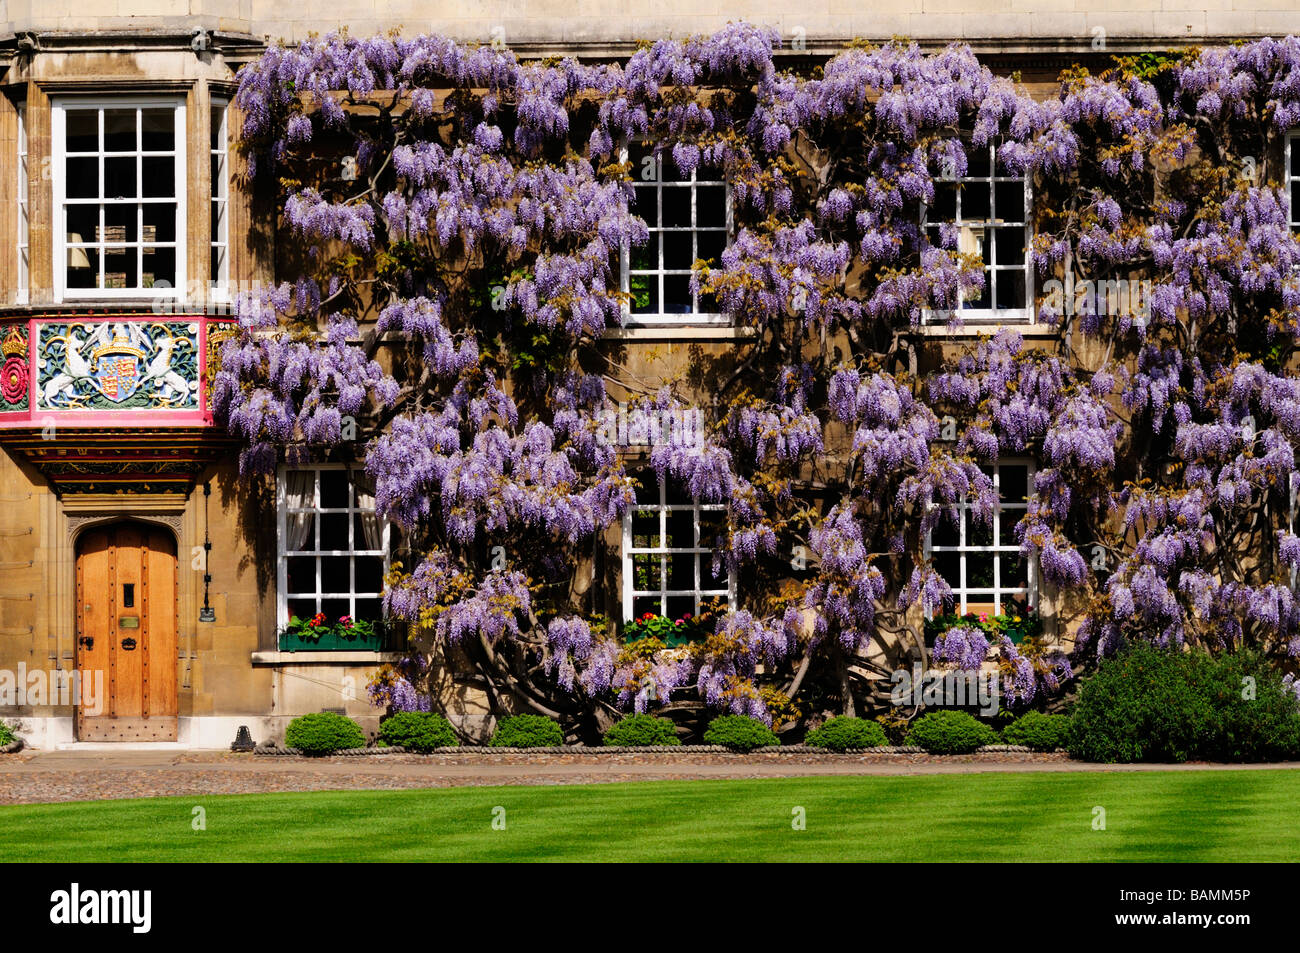 Wisteria at Christs College, Cambridge, England, Uk - Stock Image